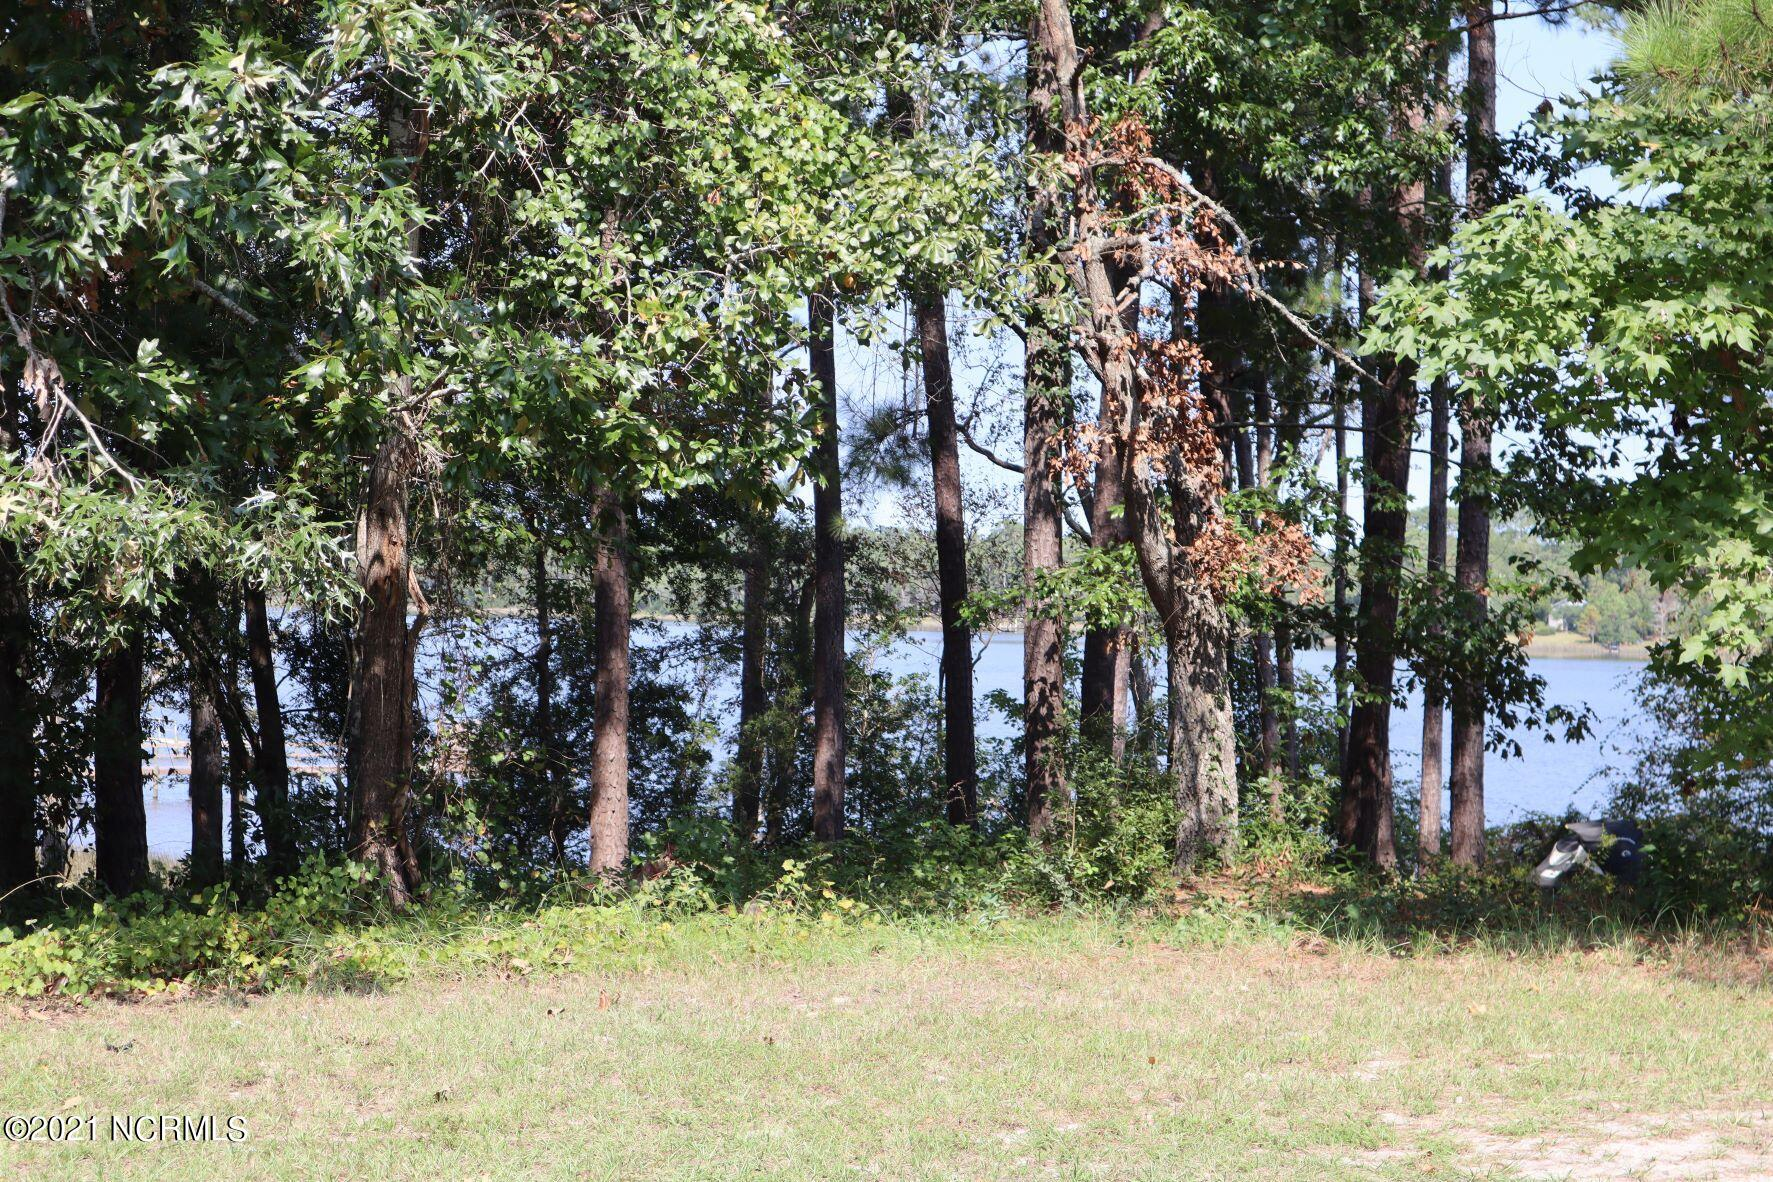 Beautiful high waterfront lot just for your dream home. There is plenty of room to build above the flood zone so no fear there. Launch your kayaks or boat and see all nature has to offer. This lot is close to the quaint town of Swansboro and a short drive to the beautiful beaches of the Crystal Coast.